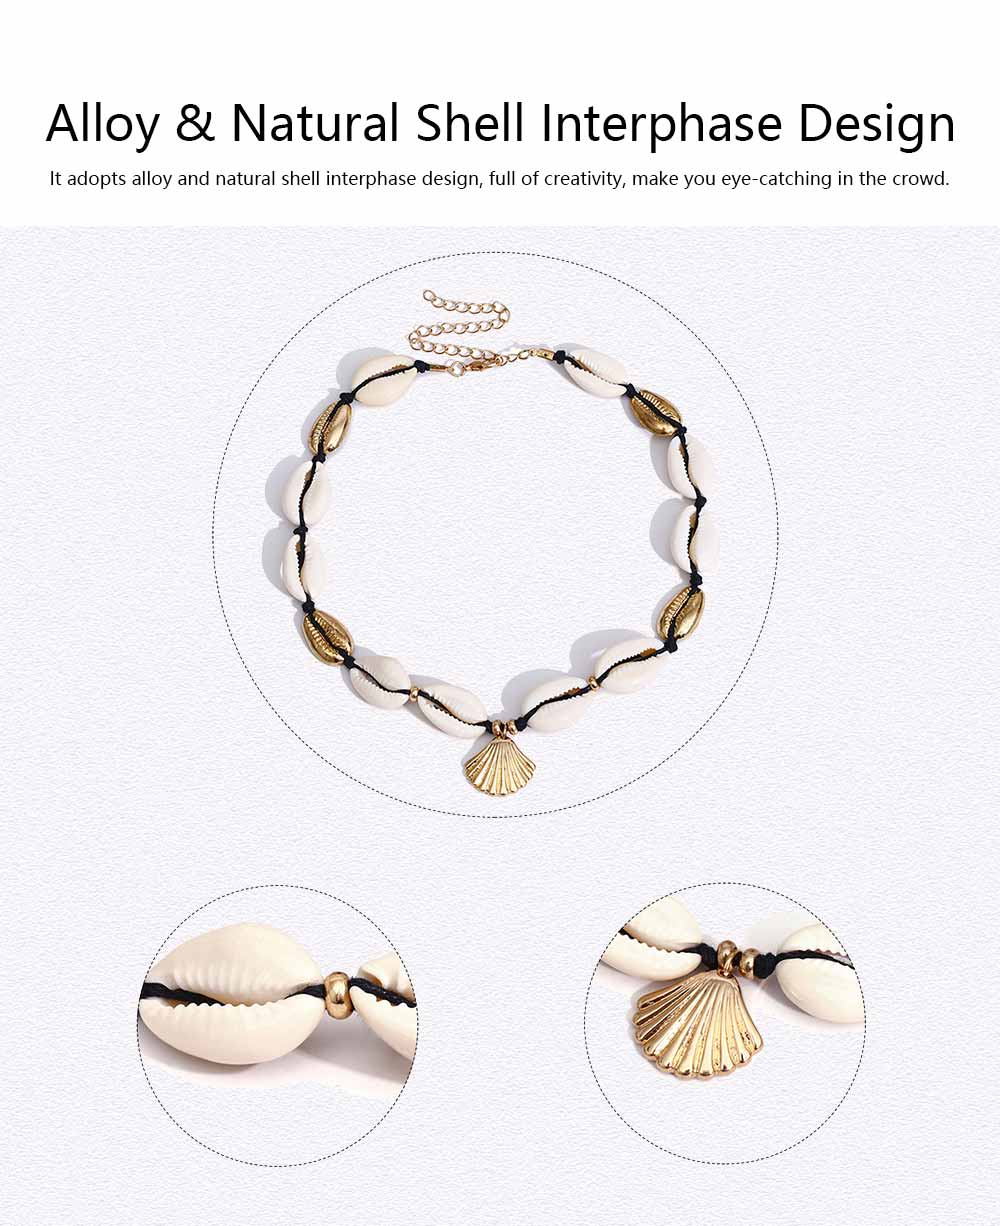 Handmade Shell Necklace Clavicle Chain for Women, Natural Shell Necklace Bracelet Cowrie Choker Collarbone Chain, Adjustable Trible Charms Jewelry 4